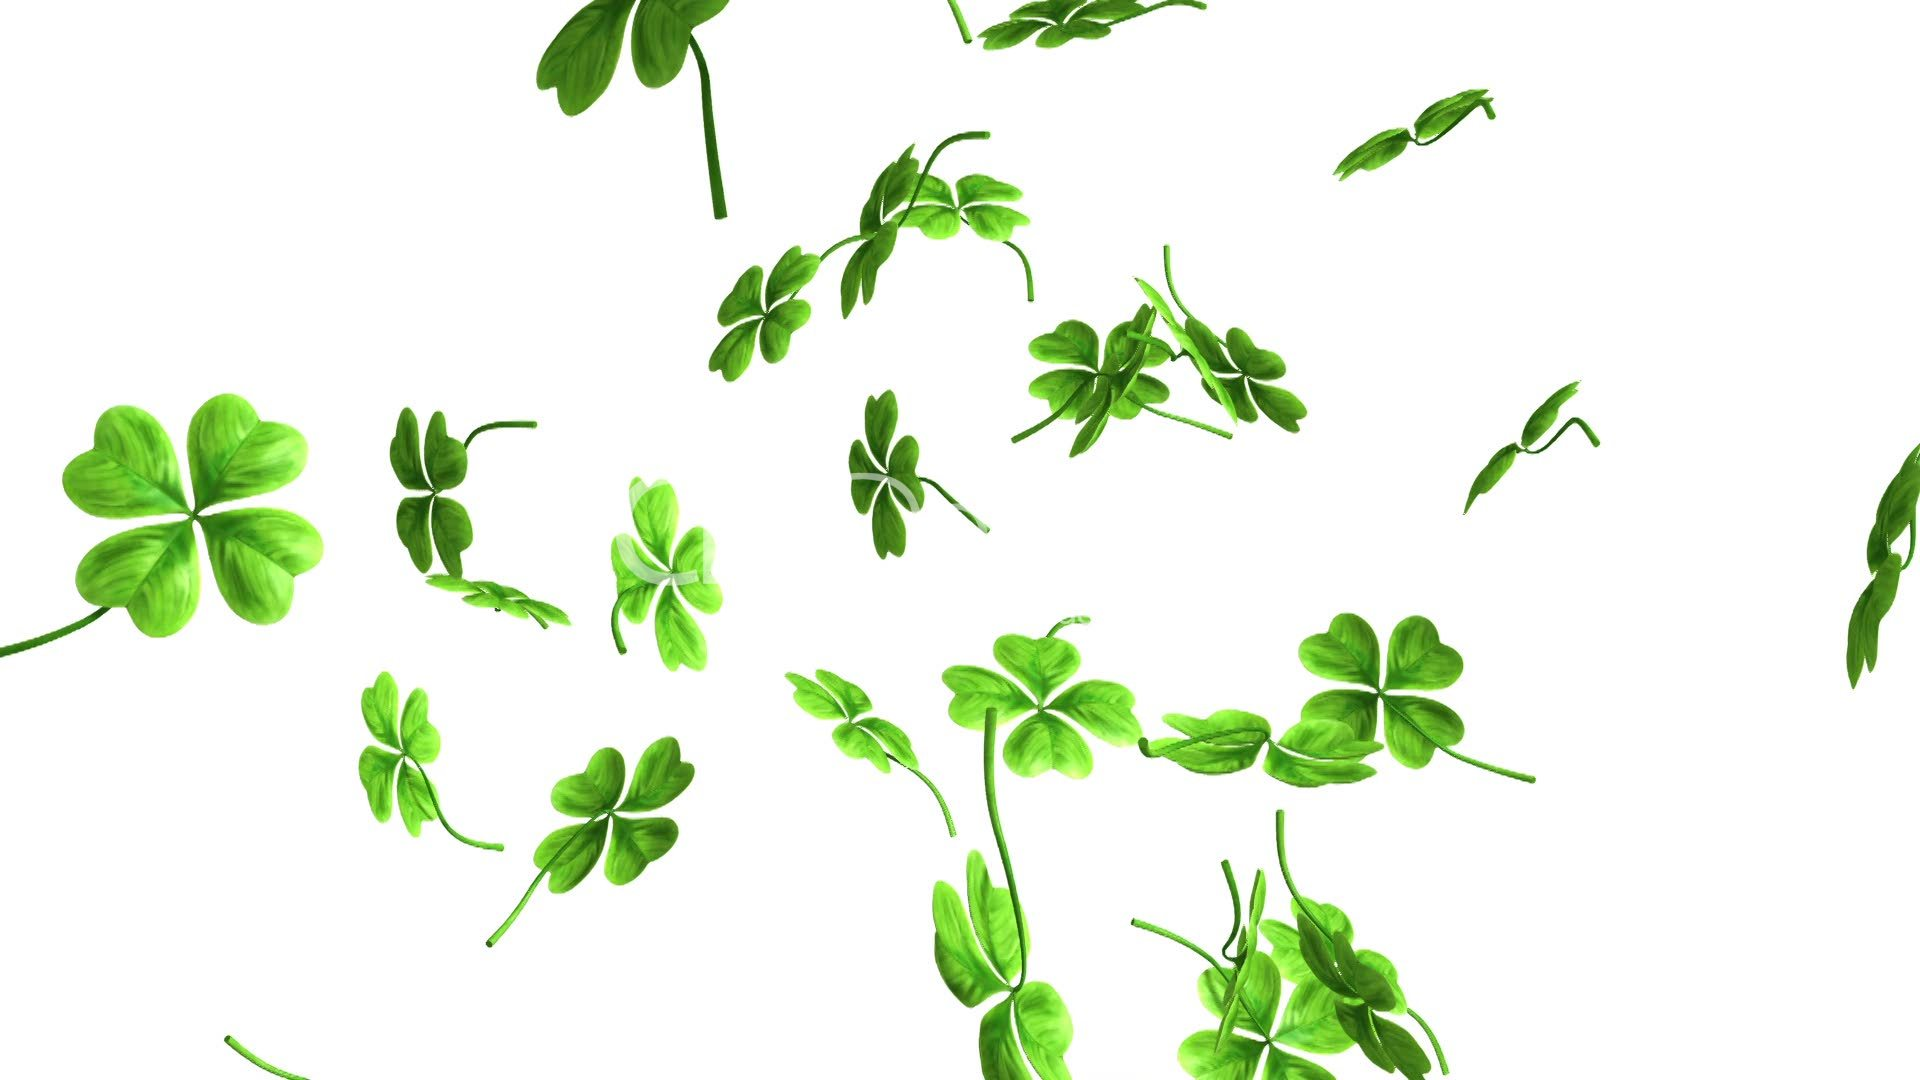 3d Falling Leaves Animated Wallpaper Falling Shamrock Leaves Royalty Free Video And Stock Footage